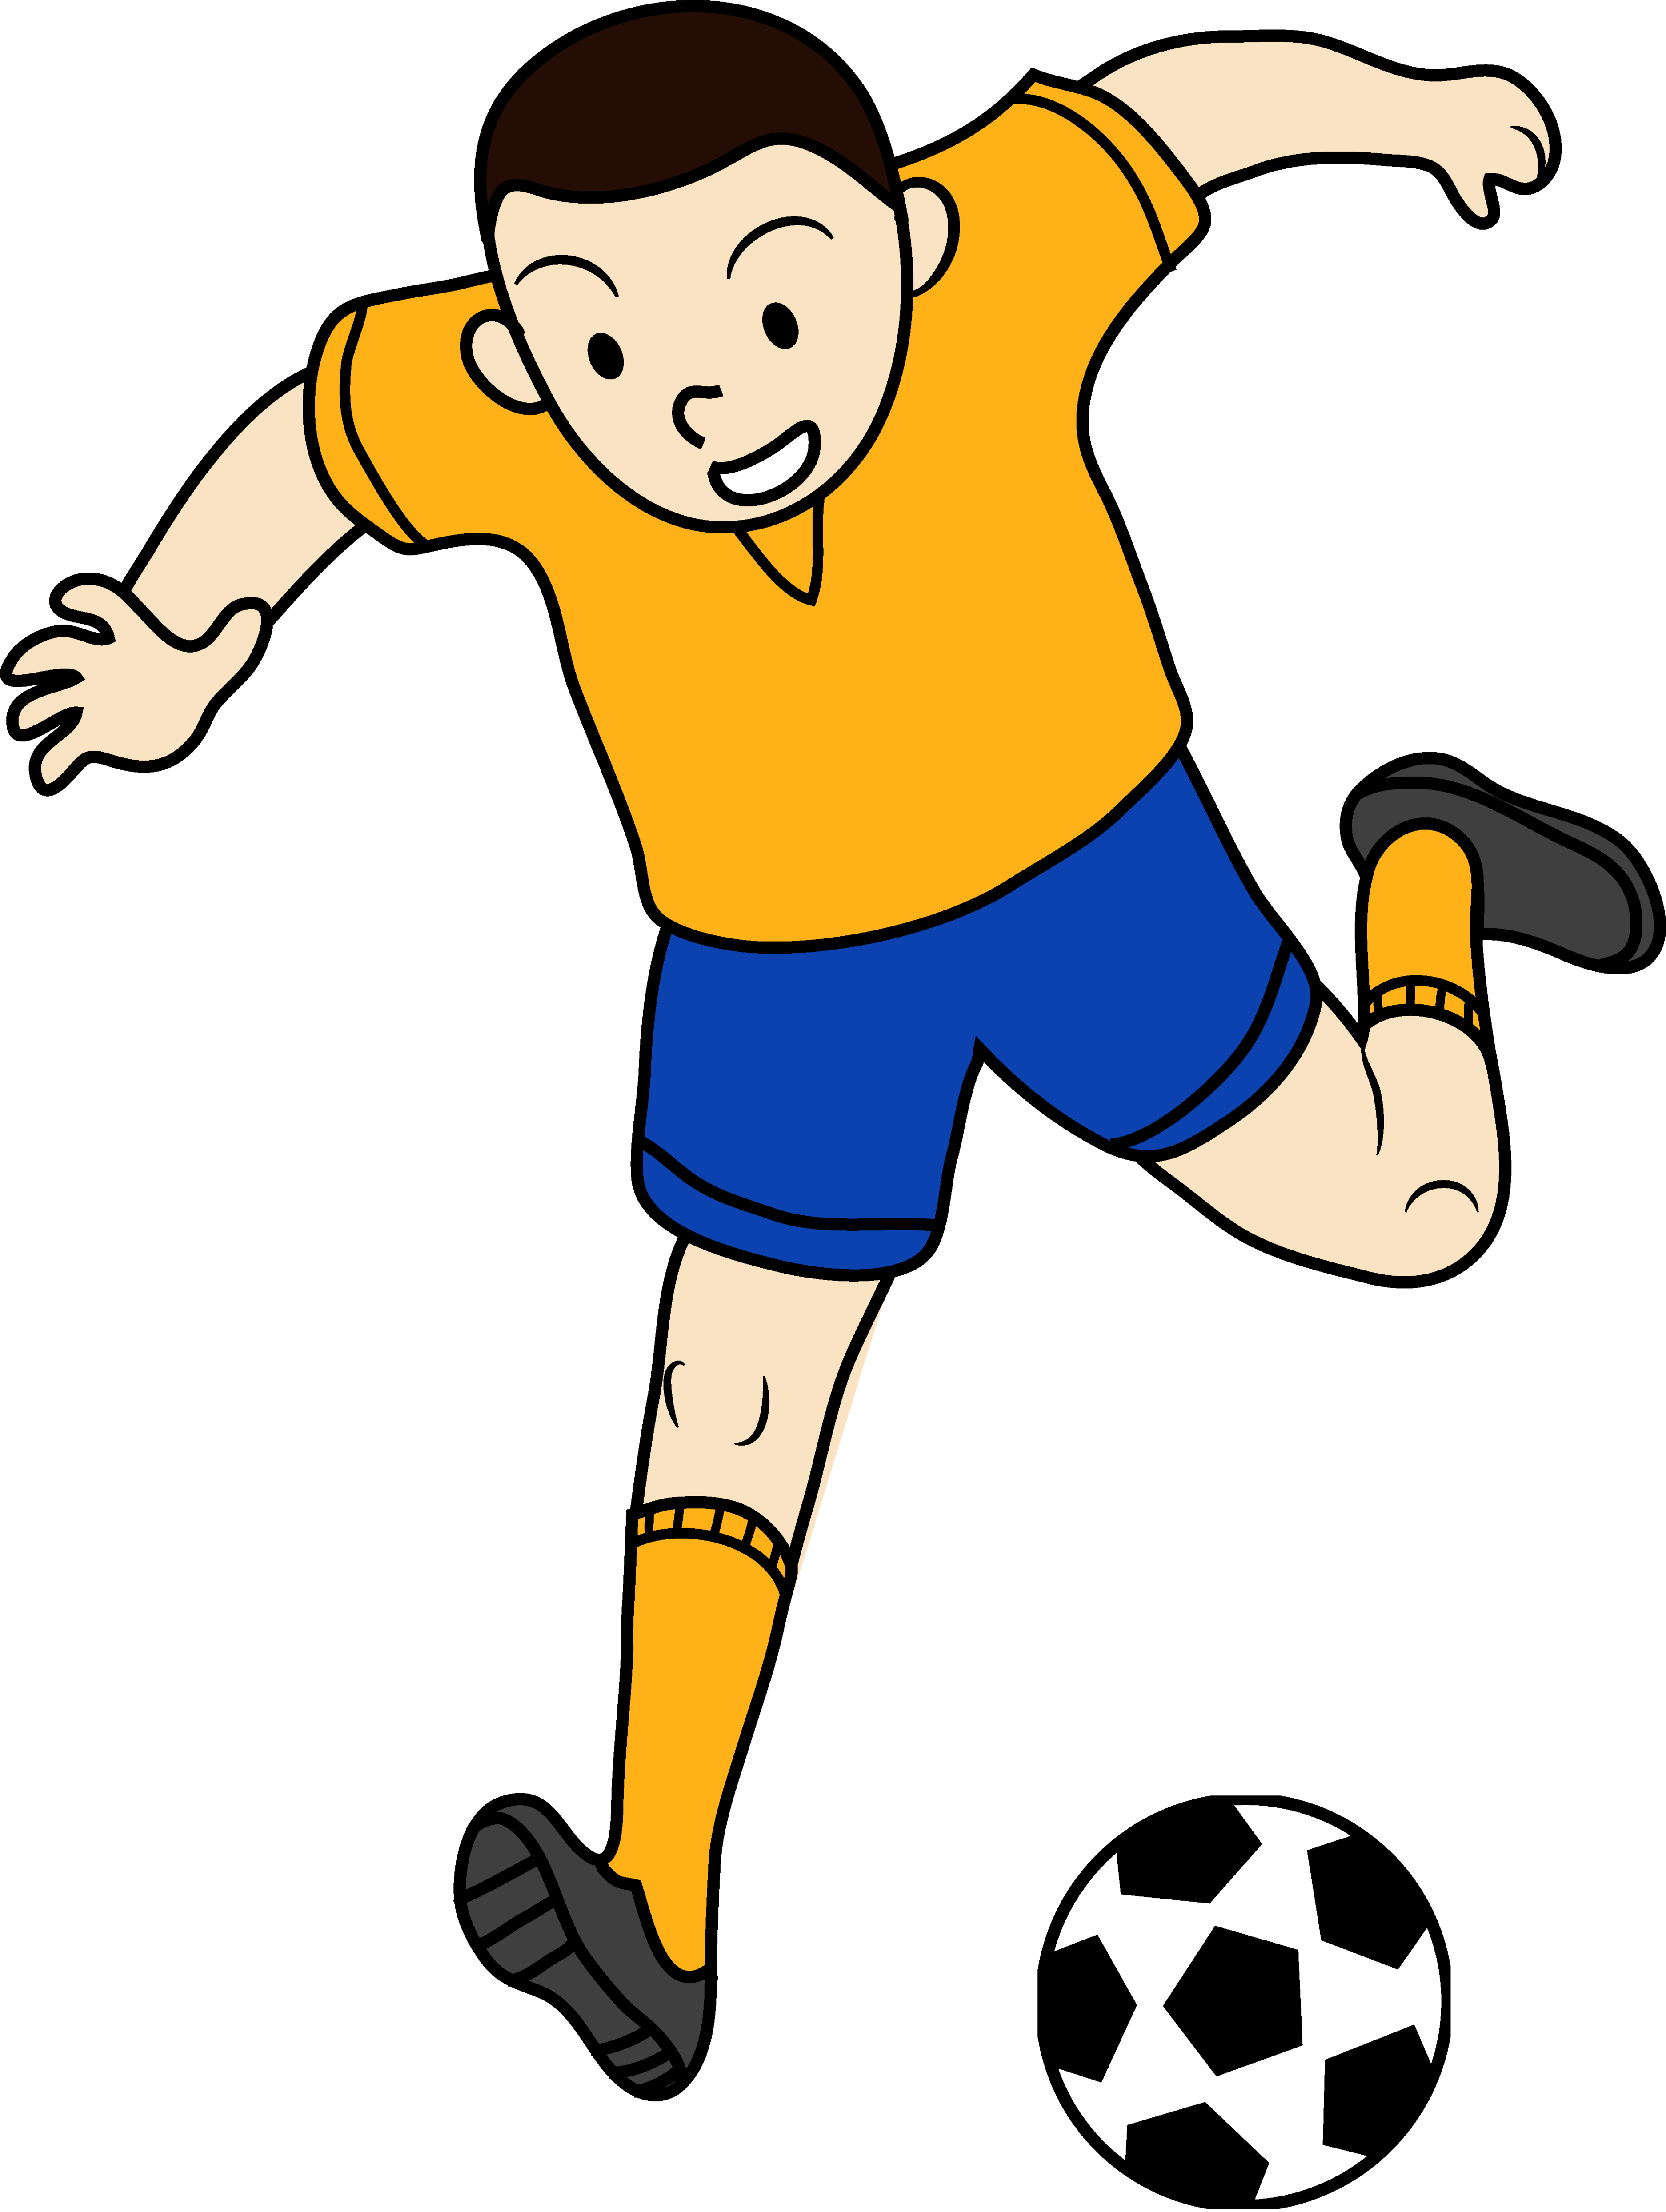 Football clipart image clip free library Football sanke man clipart clip free library